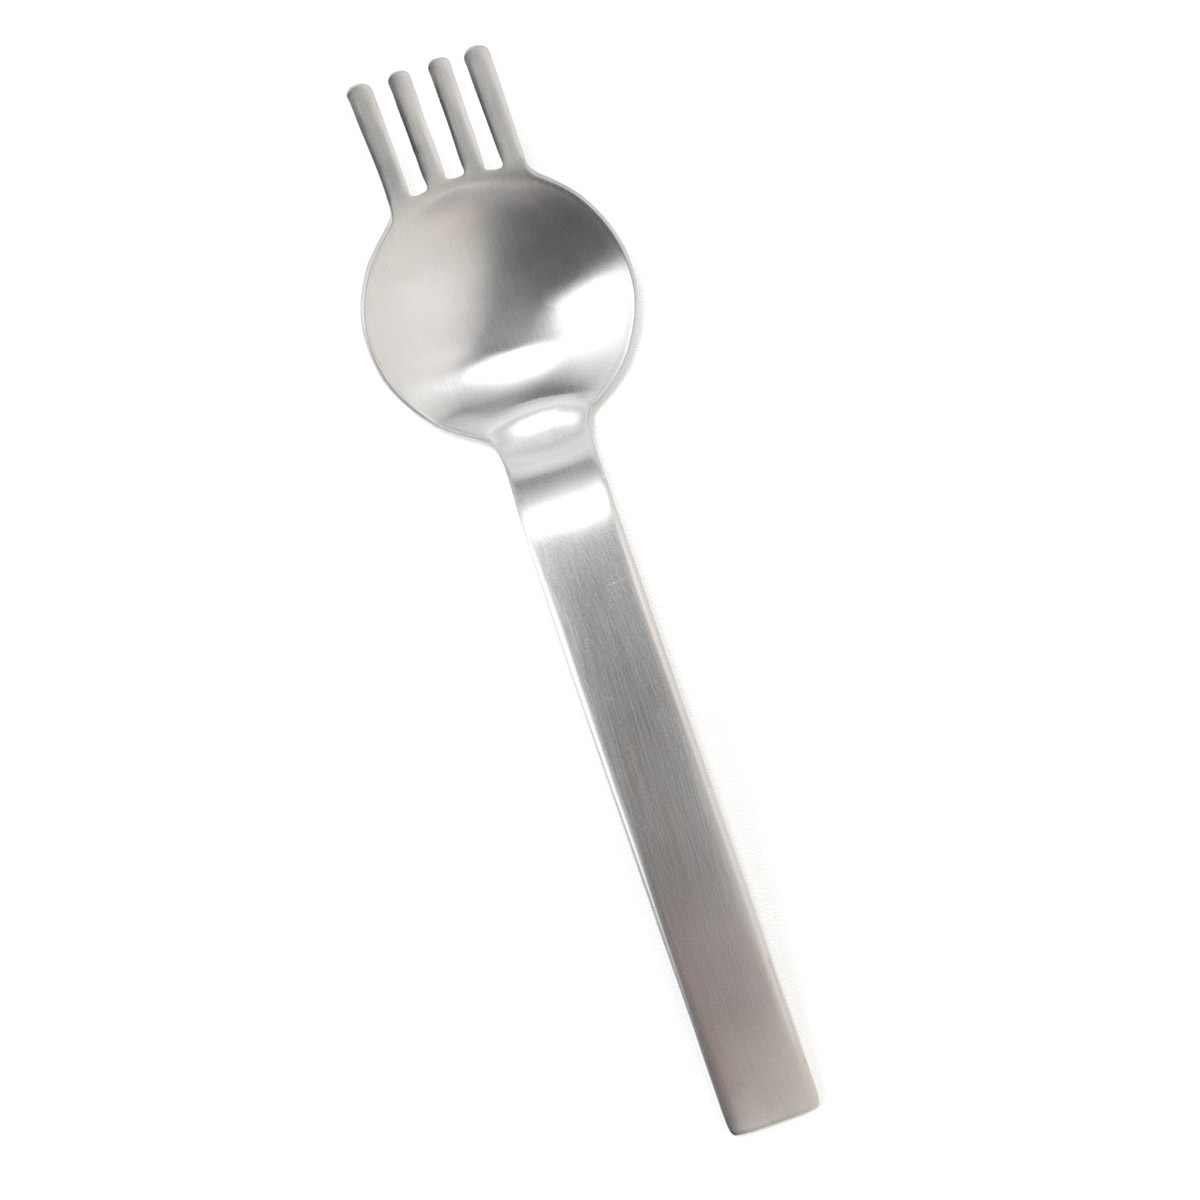 Forkspoon